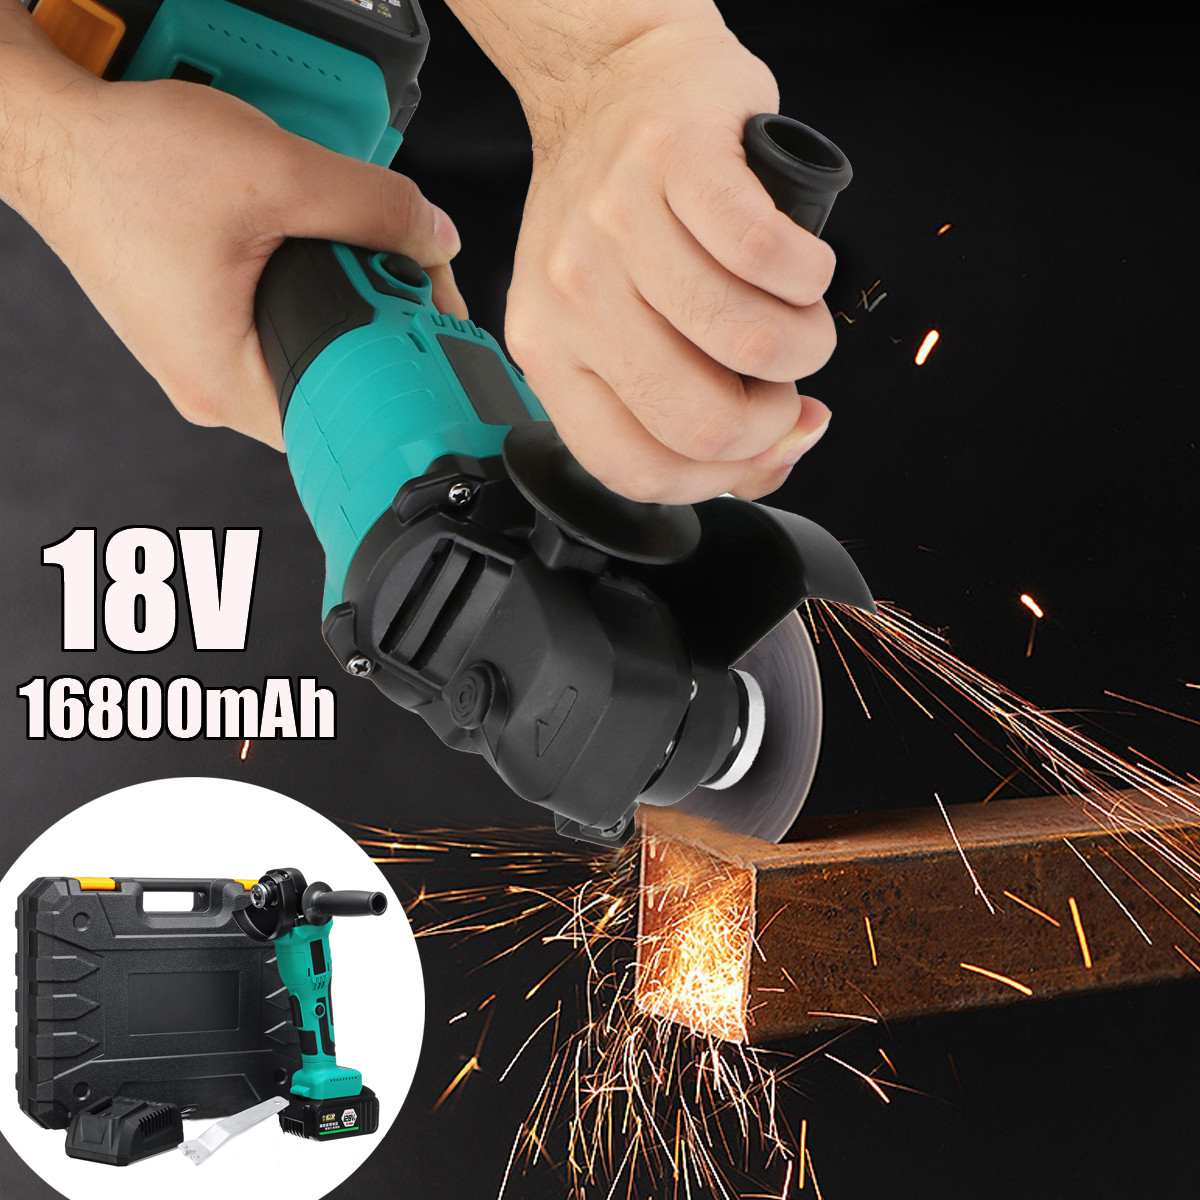 128TV Brushless Angle Grinder Press Type Brushless Machine Rechargeable Polishing Machine With Plastic Box Packaging128TV Brushless Angle Grinder Press Type Brushless Machine Rechargeable Polishing Machine With Plastic Box Packaging